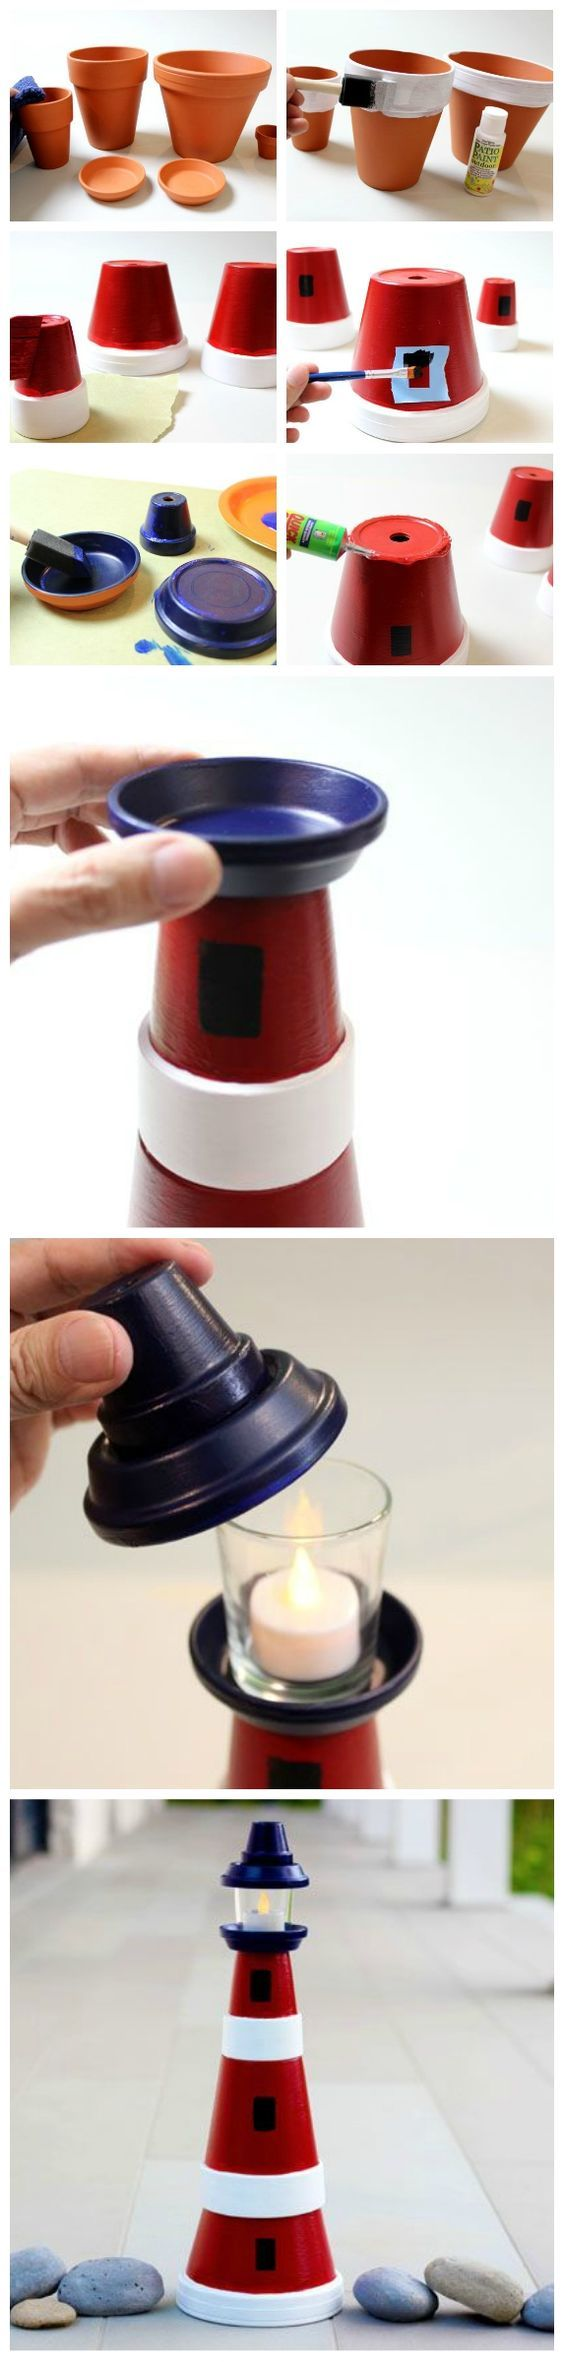 Utiliser des pots de terre pour fabriquer un photophore phare / #DIY / #Tuto / #Upcycling / DIY Project: Clay Pot Lighthouse: